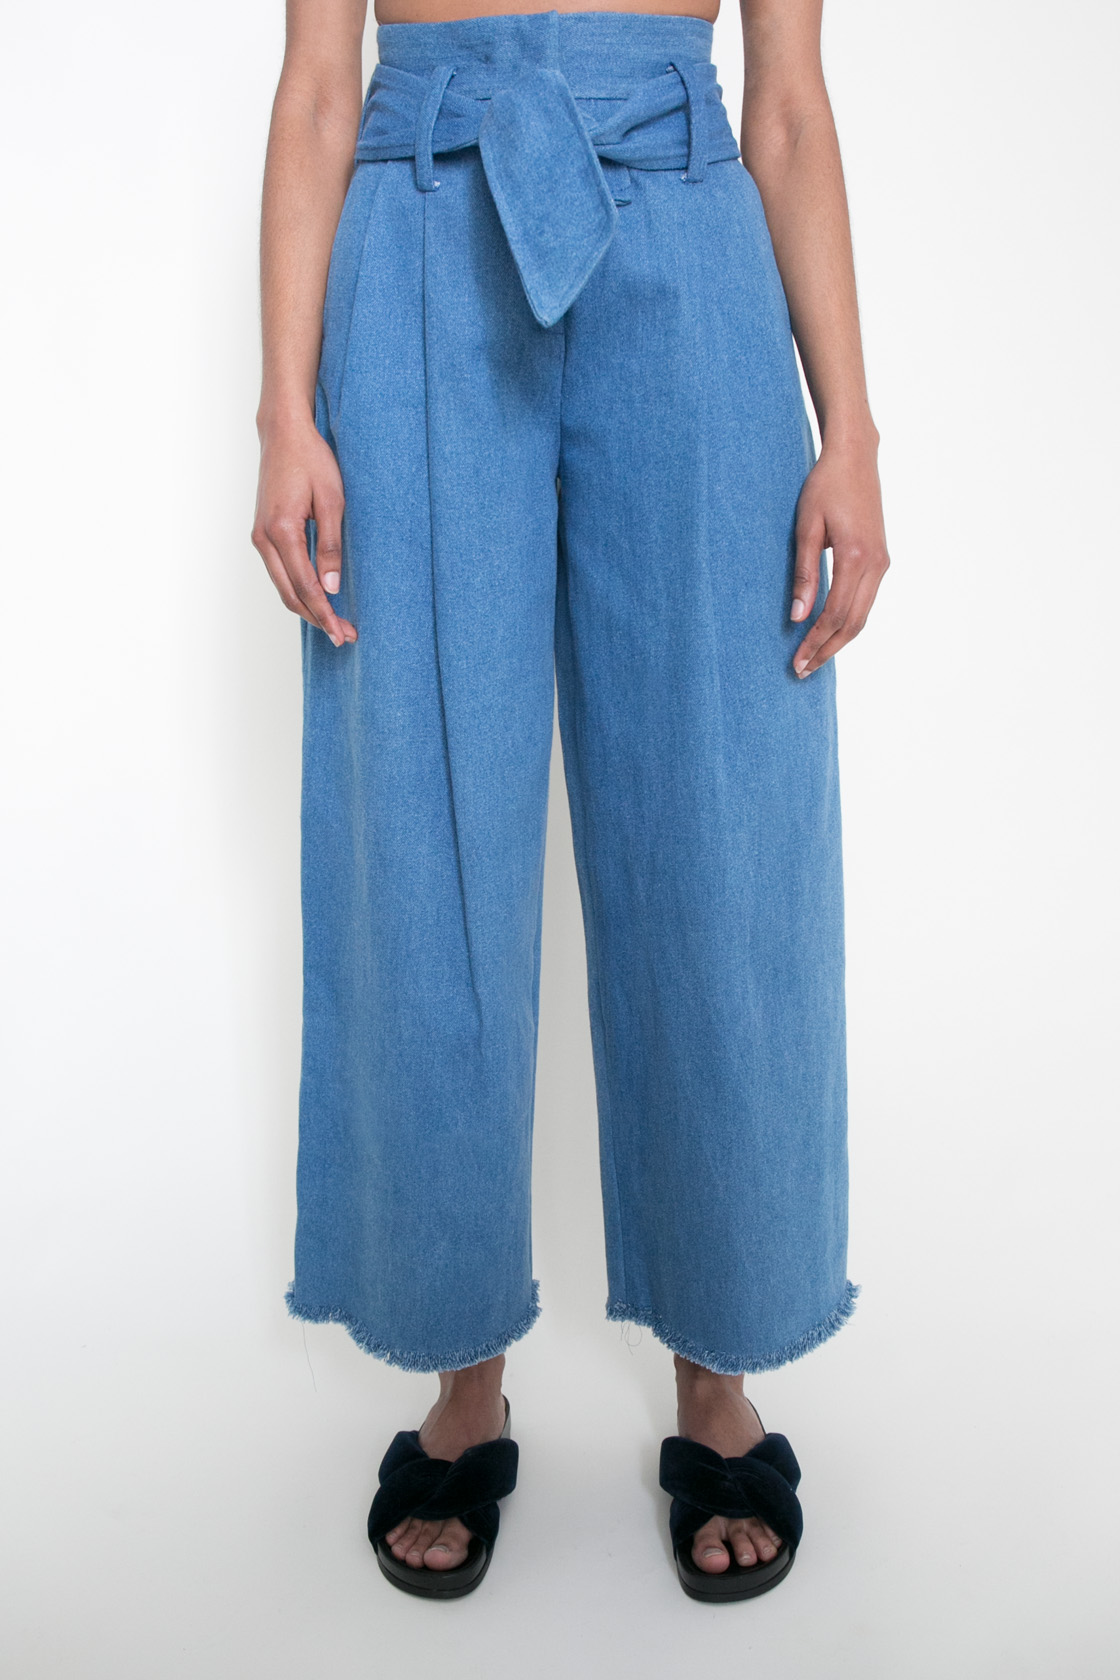 Ceres Denim Pant  XS S M L  $345